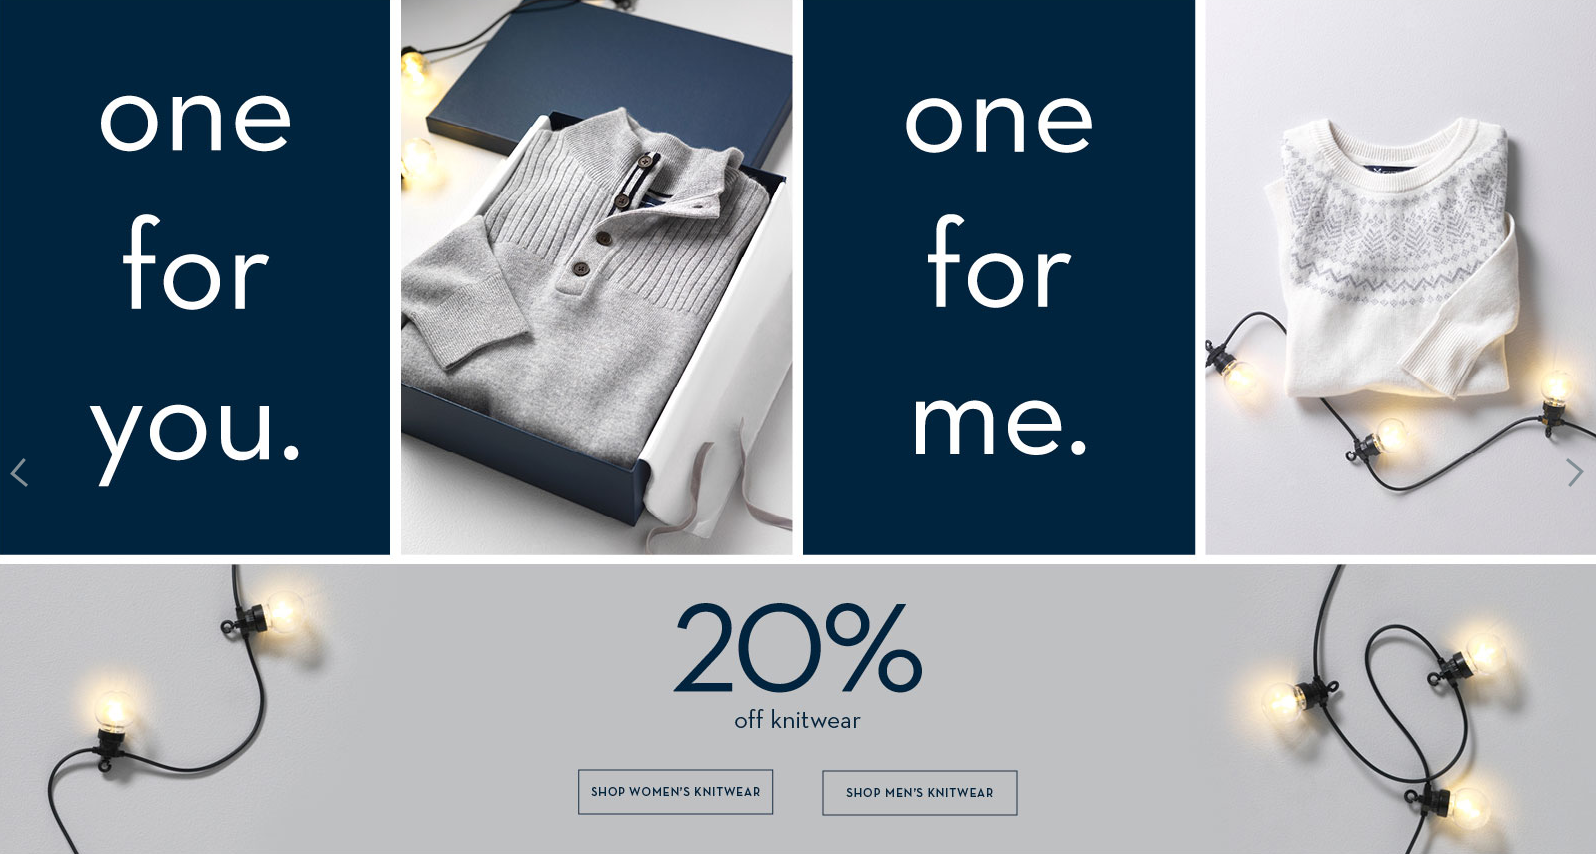 Crew Clothing: 20% off women's and men's outerwear